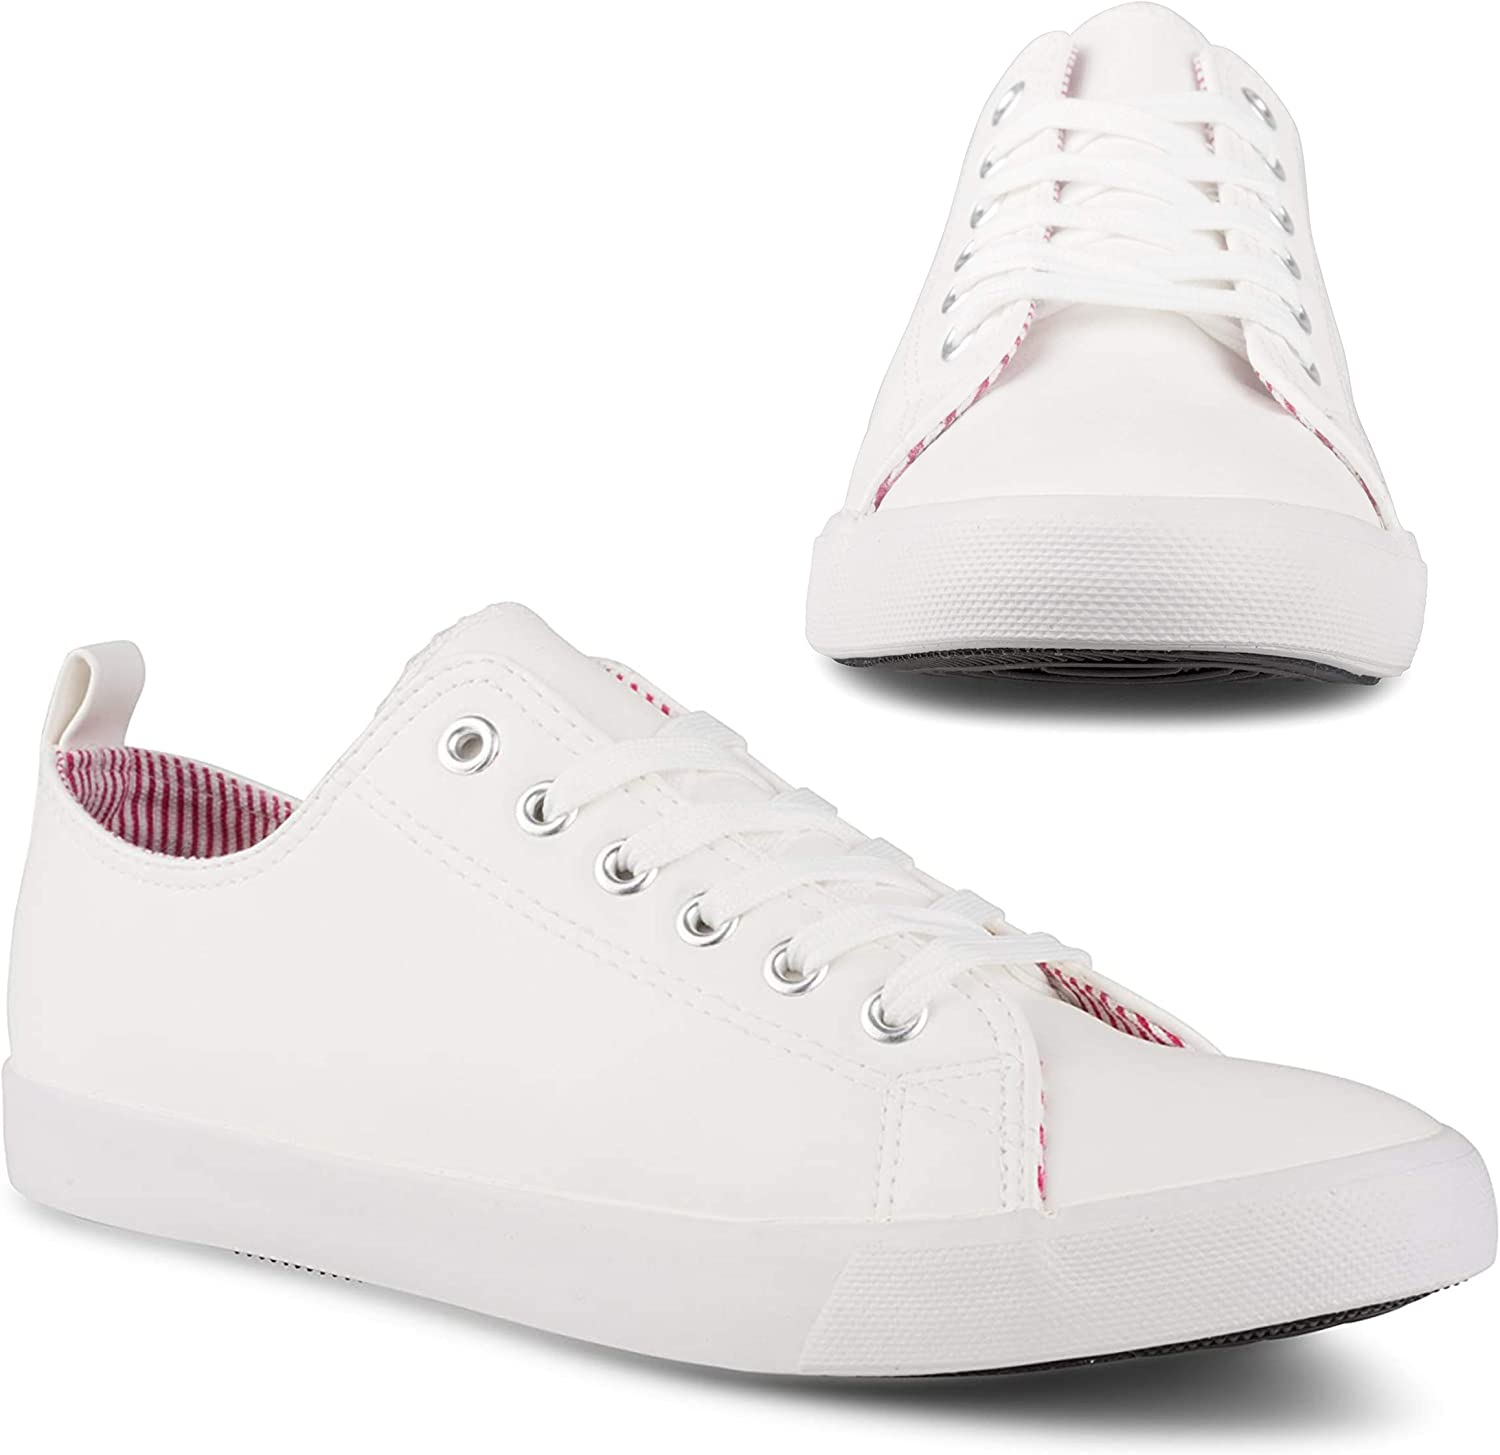 Twisted Fashion Sneakers for Women